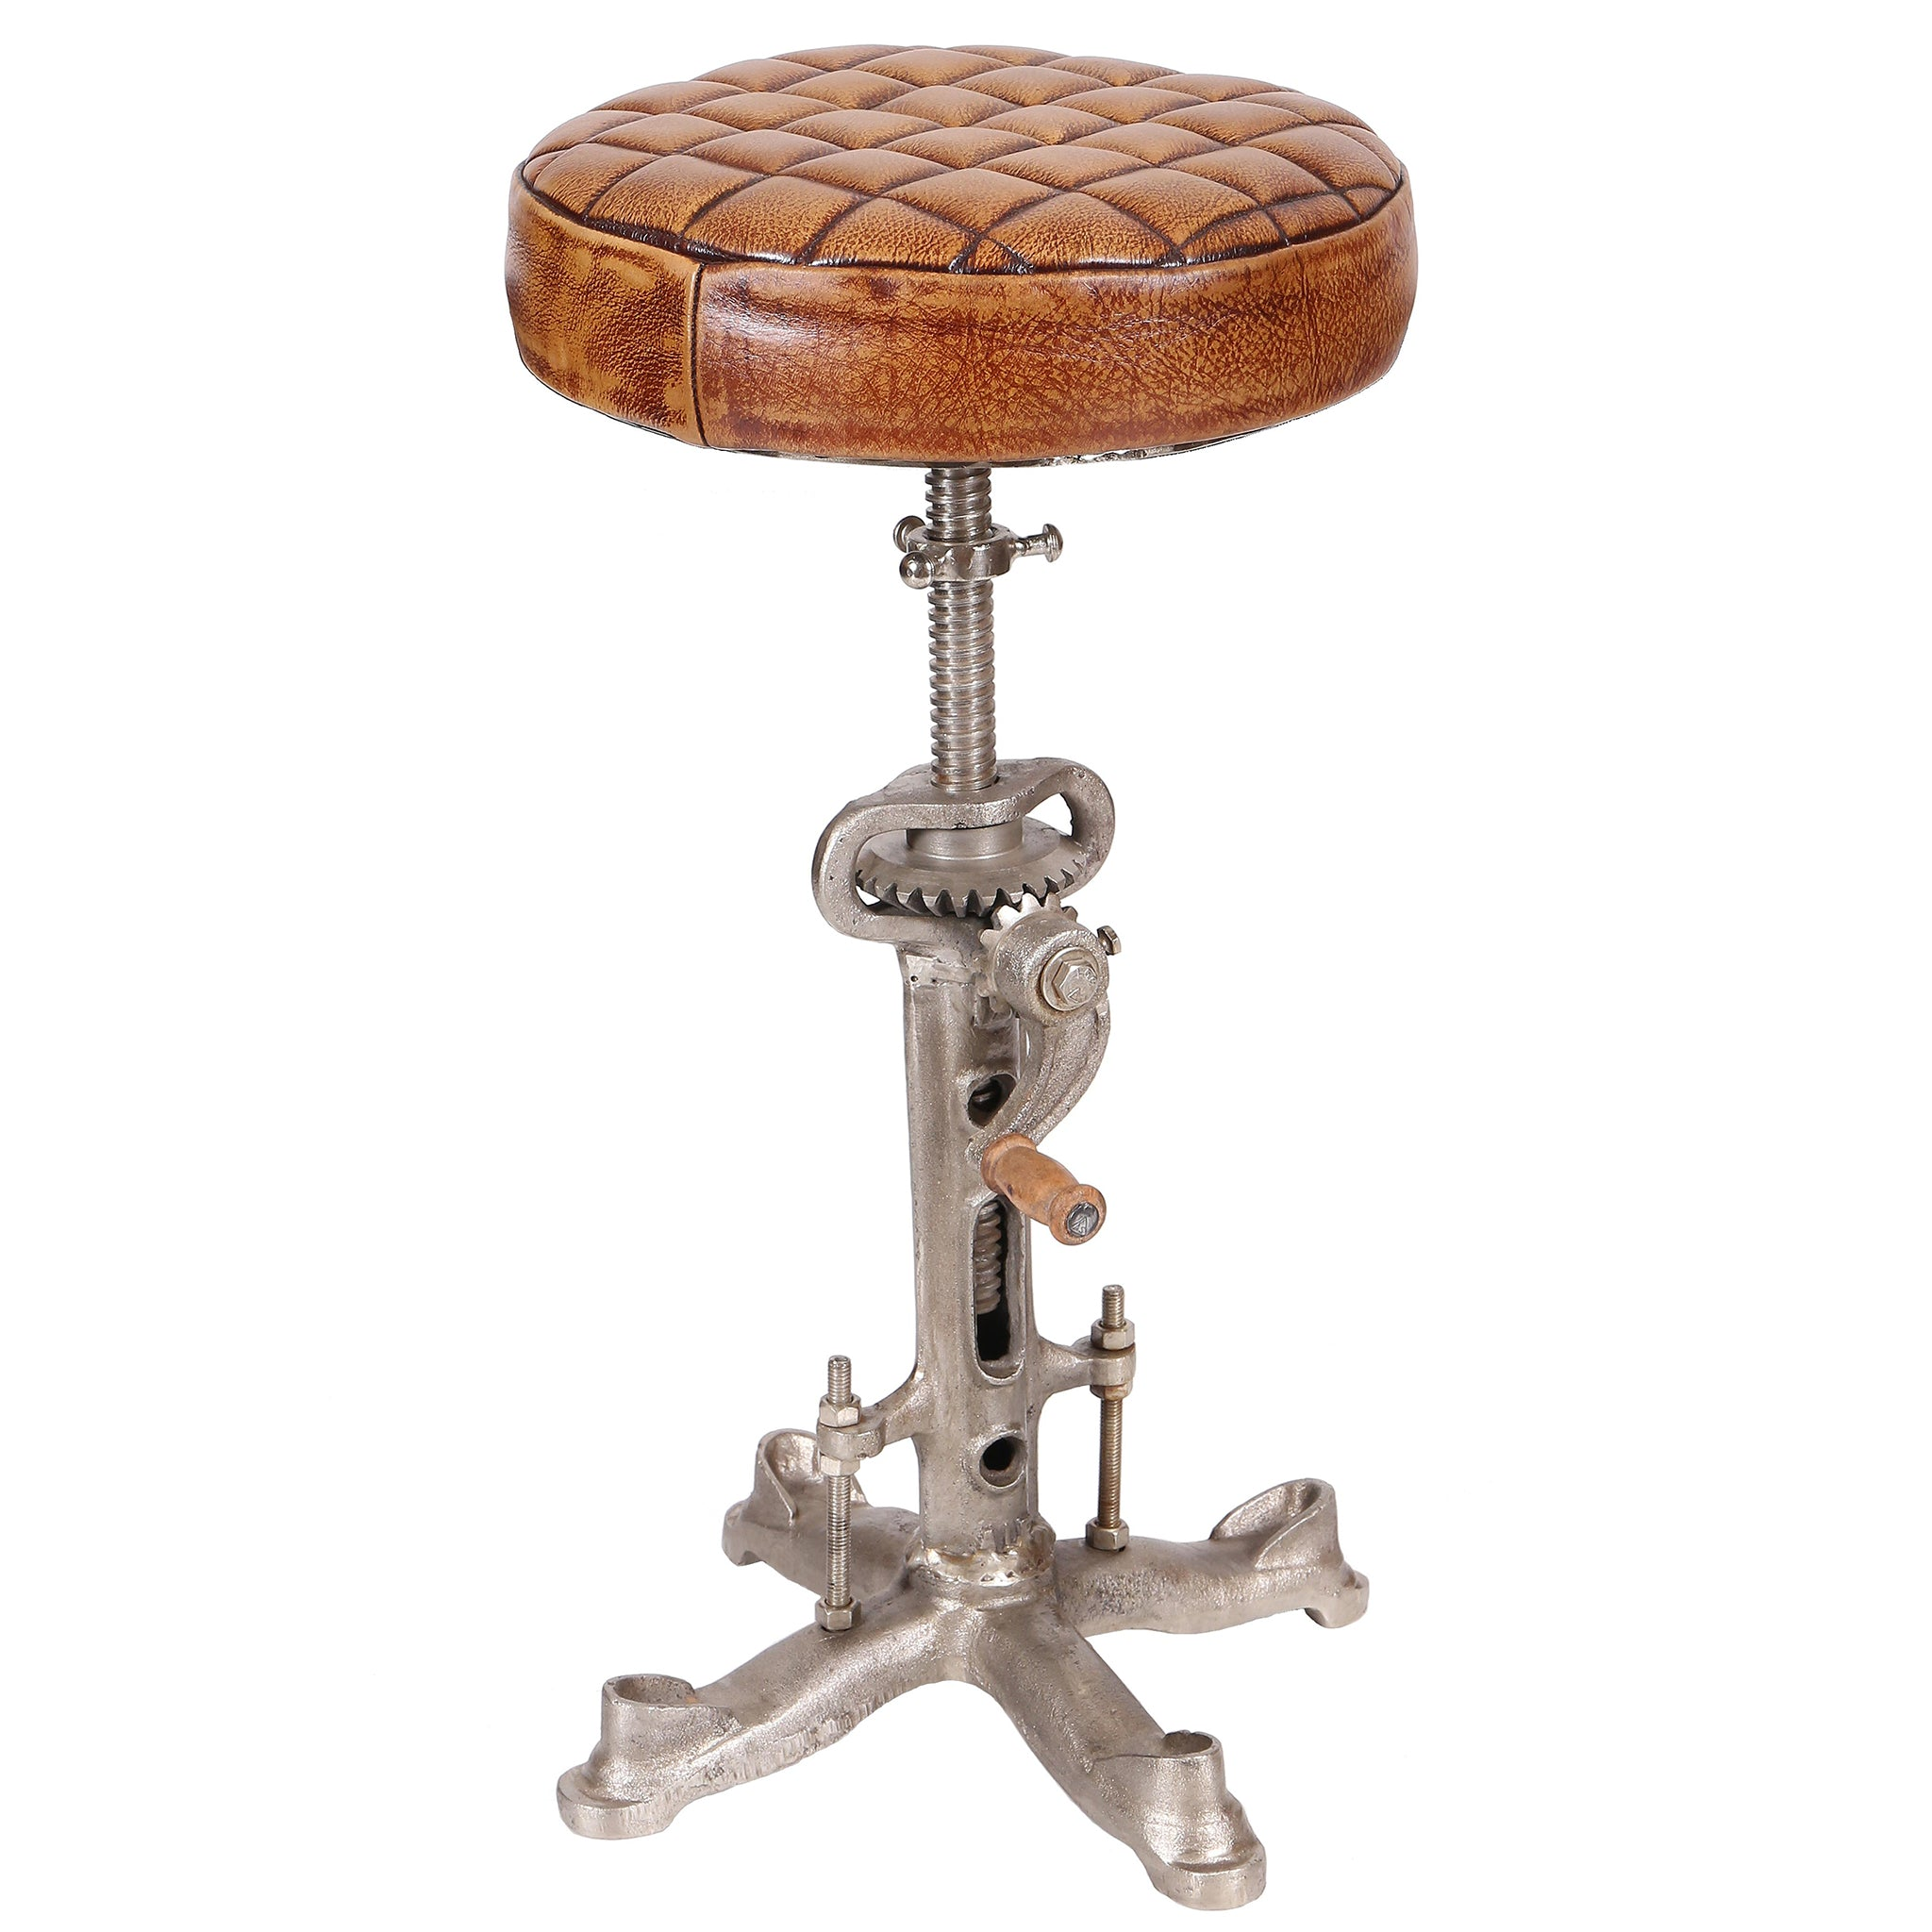 Industrial Wind-Up Cog Stool with Leather Seat Pad